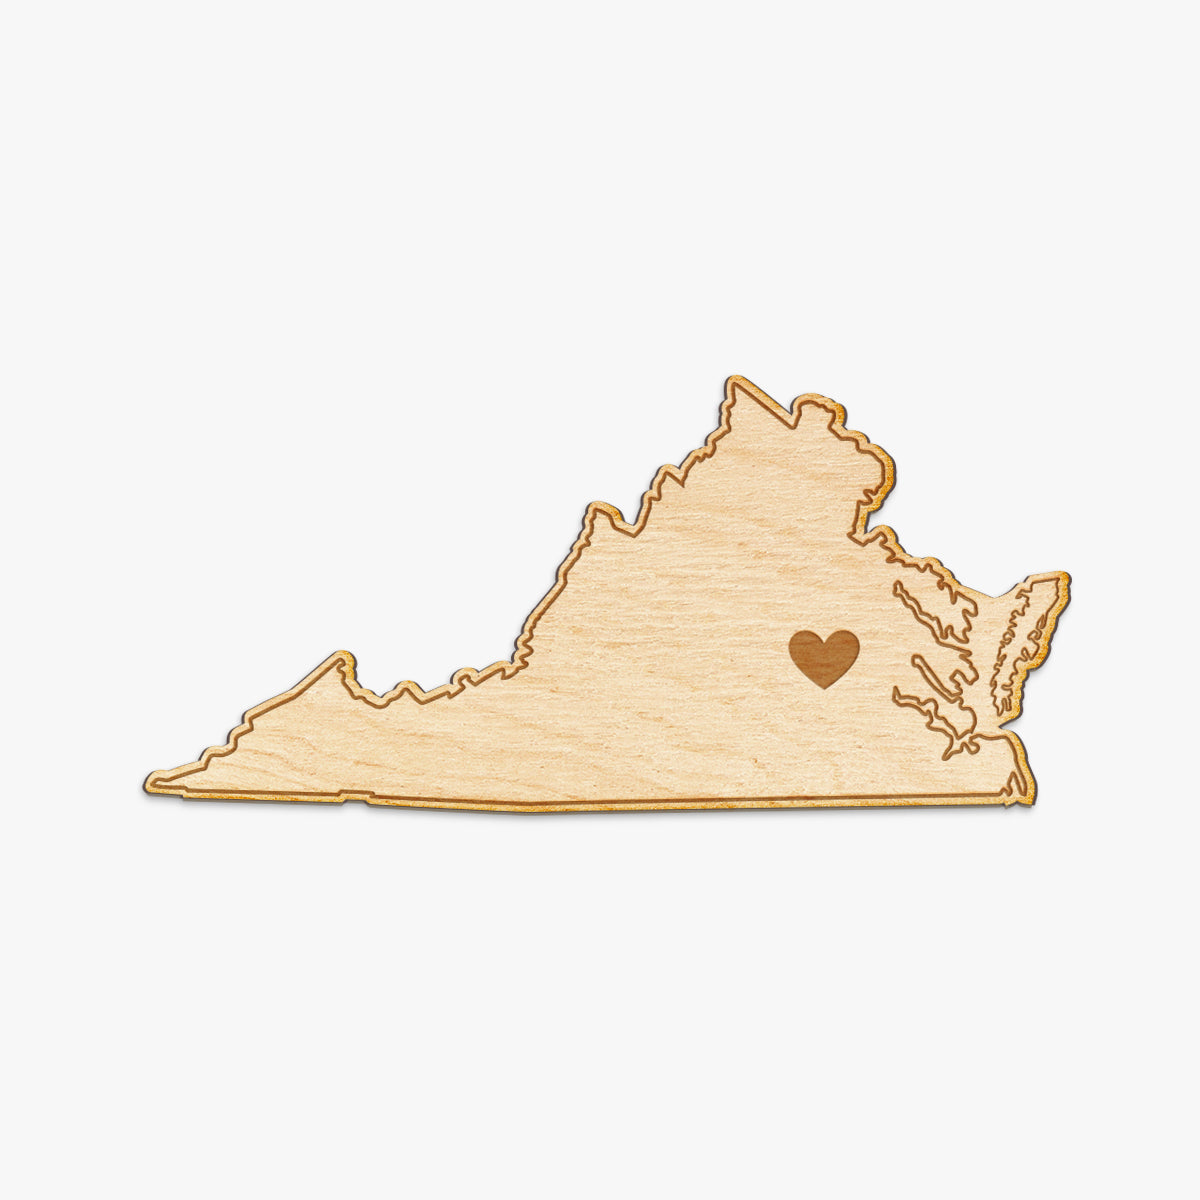 Virginia Cut Sign With Custom Engraved Heart Placement